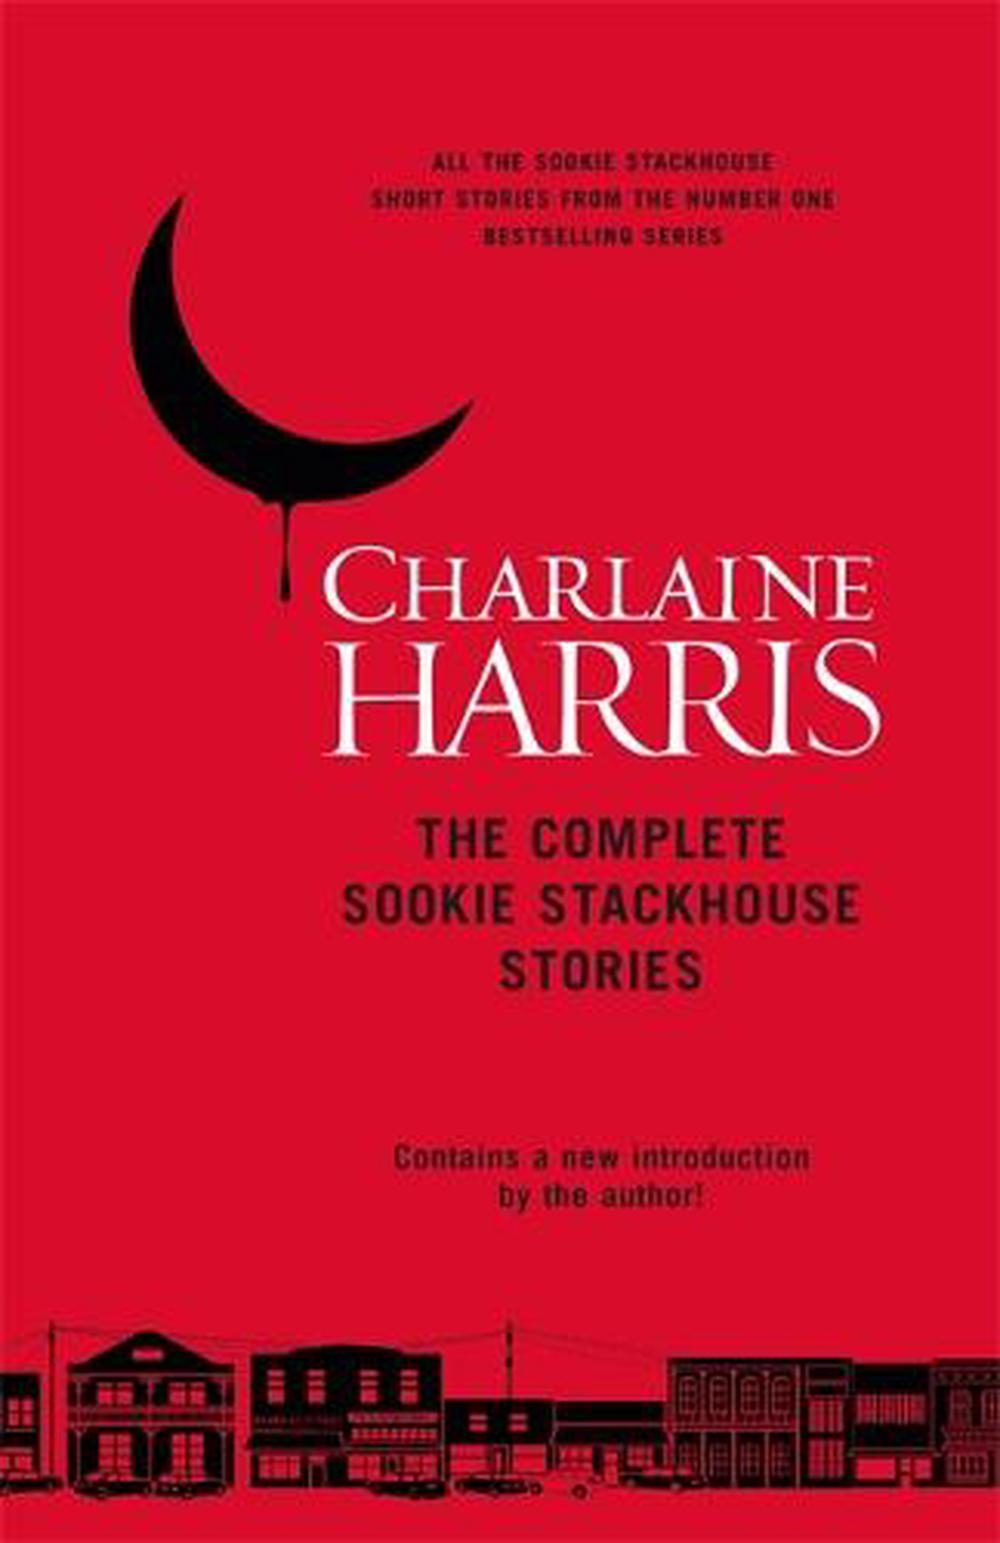 Charlaine Harris Libros Details About Complete Sookie Stackhouse Stories By Charlaine Harris Hardcover Book Free Shipp